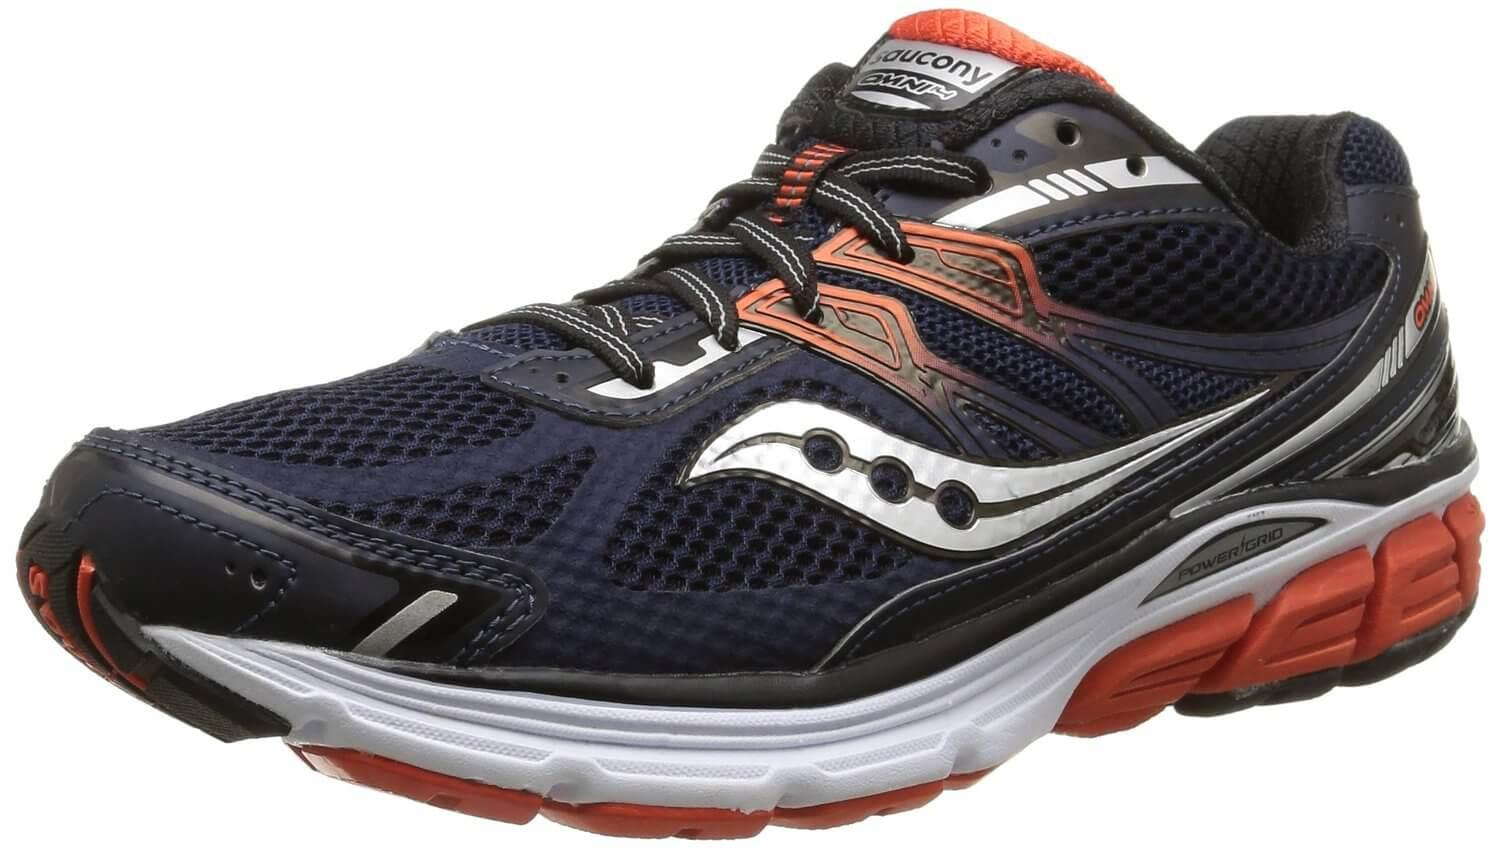 The Saucony Omni 14 uses a combination mesh/synthetic leather upper.